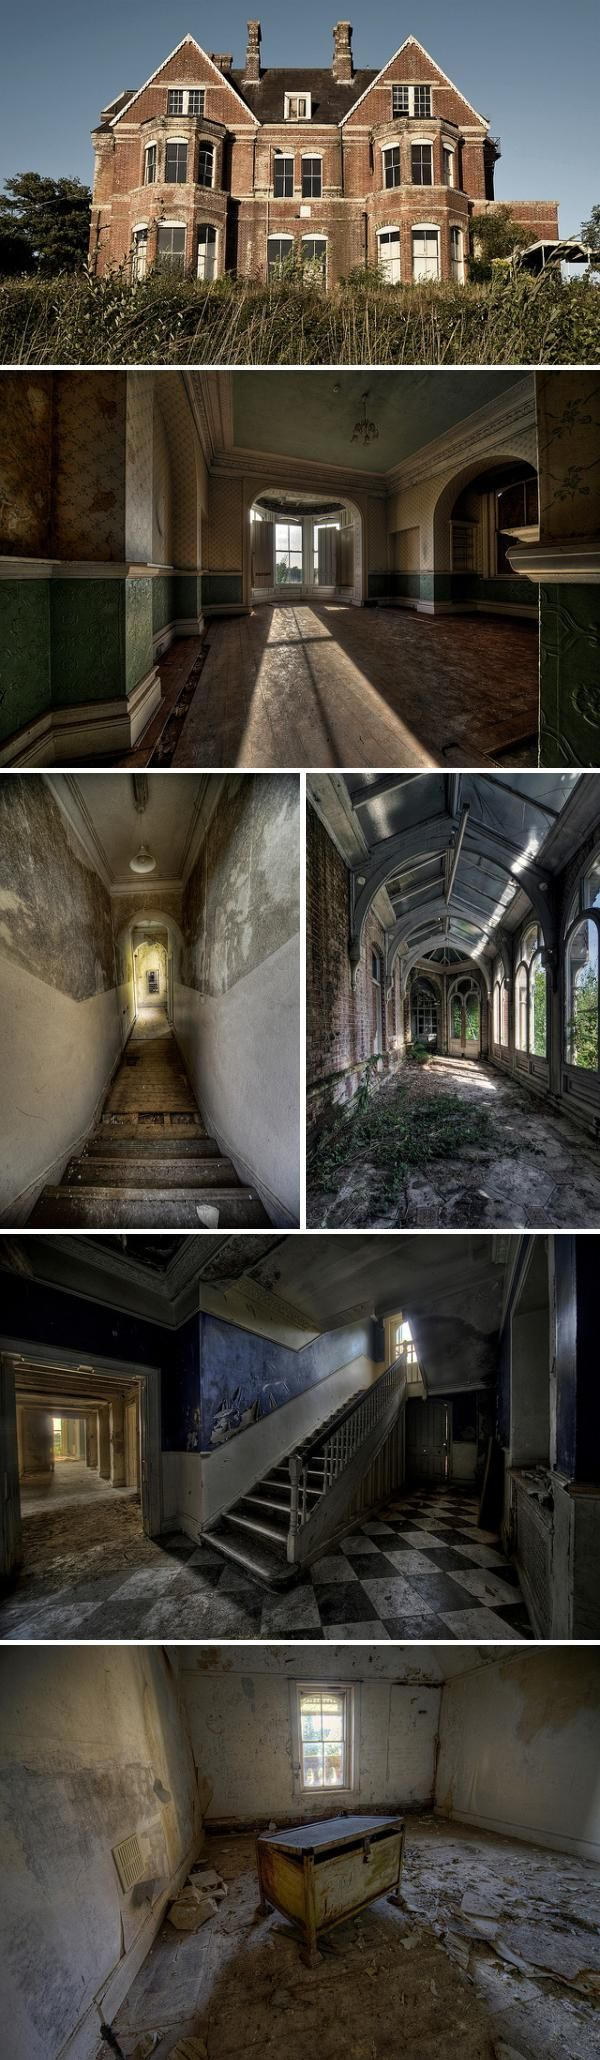 #abandoned Lillesden School for Girls, England  ...INSANE! I want to LIVE HERE!!